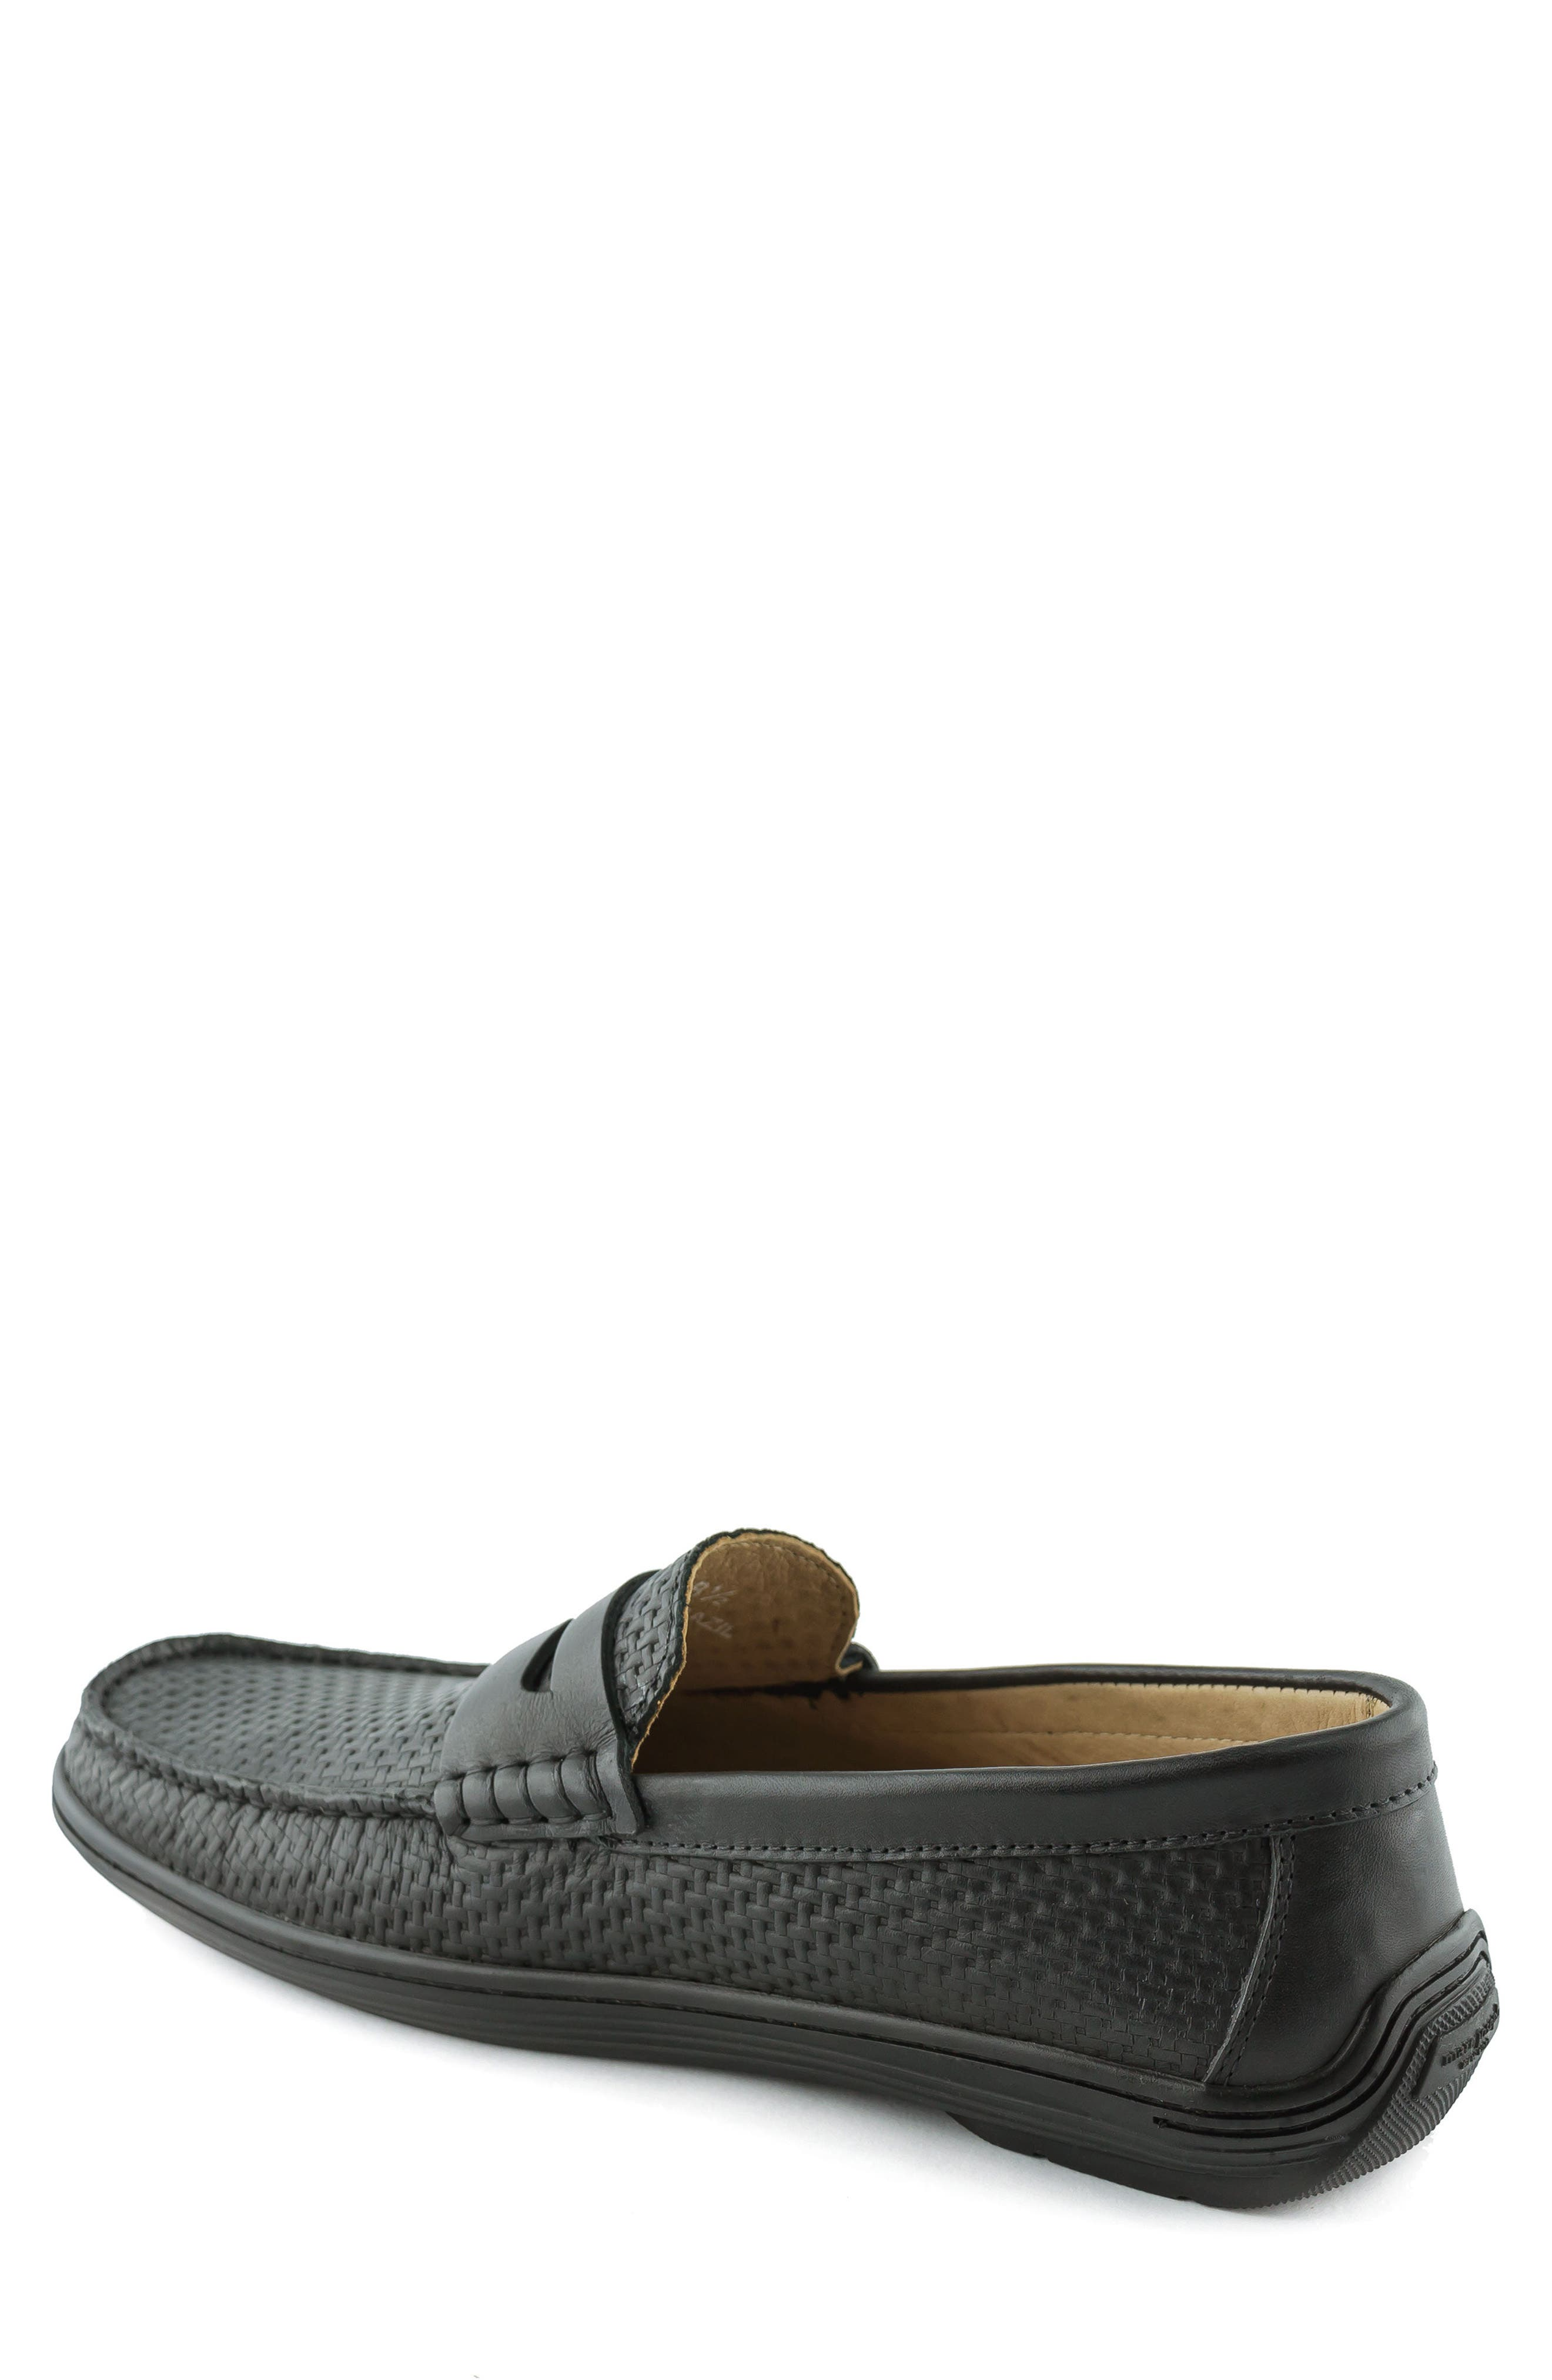 Atlantic Penny Loafer,                             Alternate thumbnail 9, color,